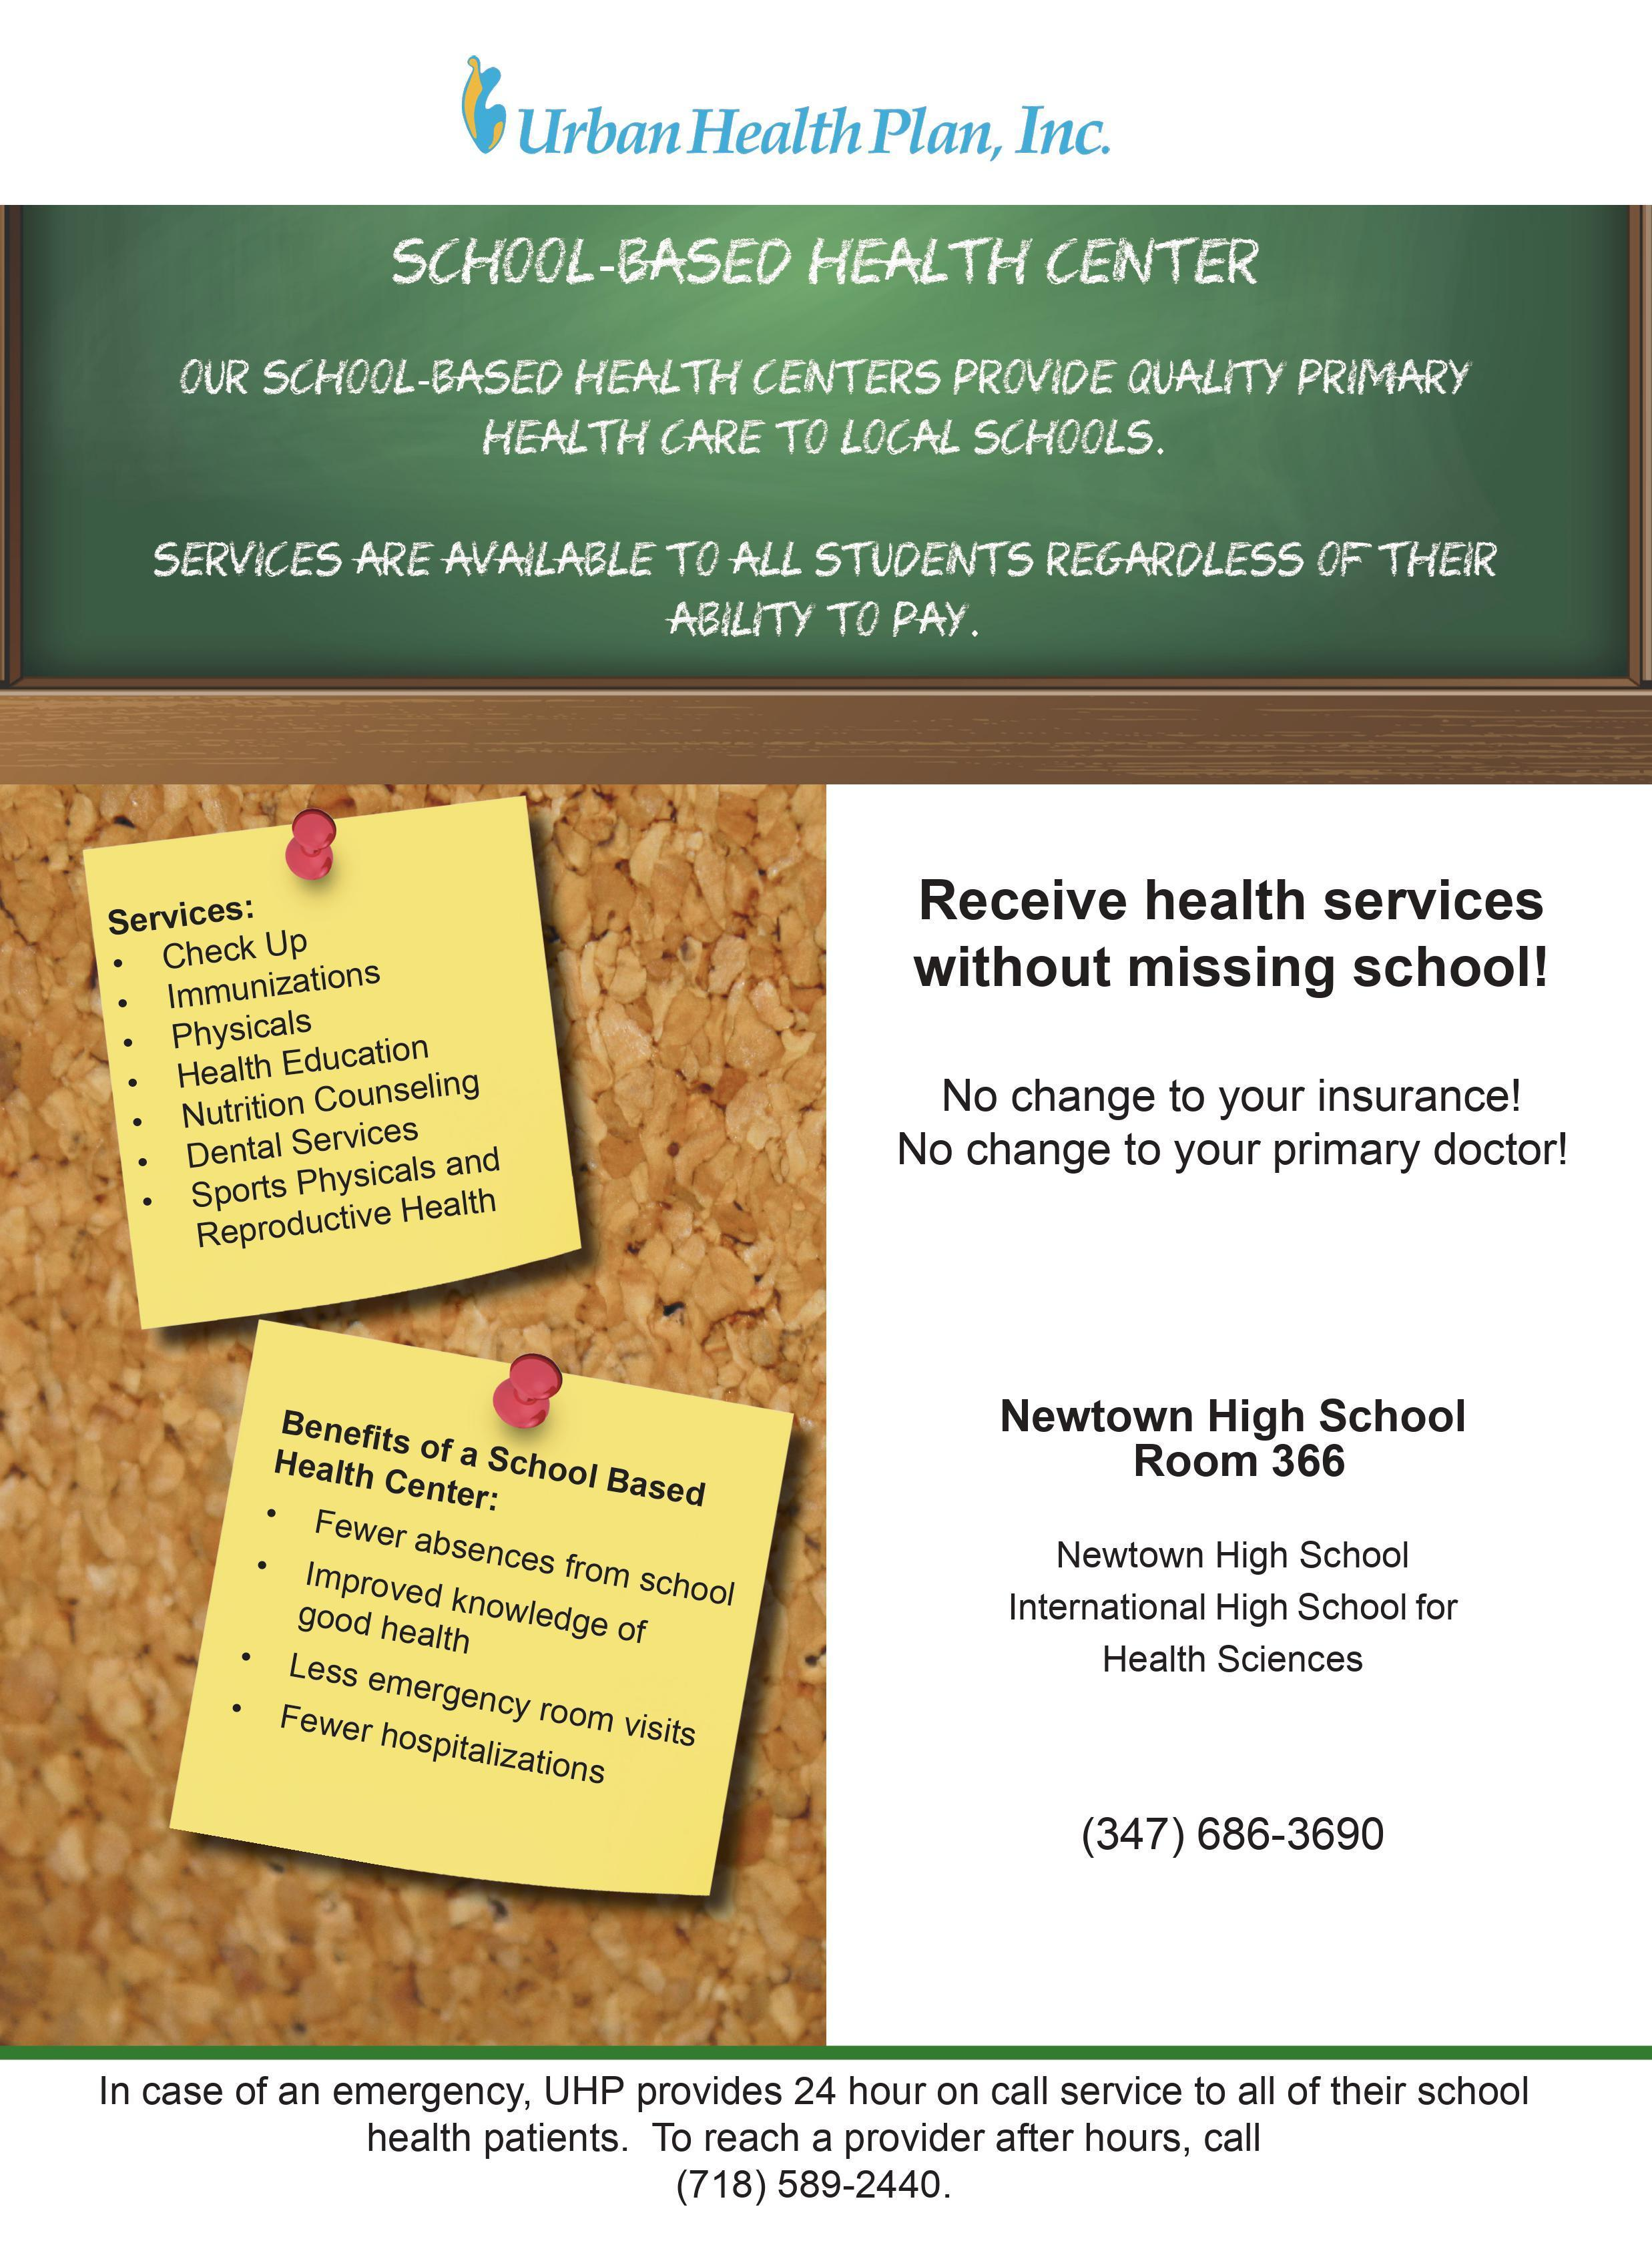 School-Based Health Center provides quality primary health care regardless of ability to pay. Call 34796863690 for more information.